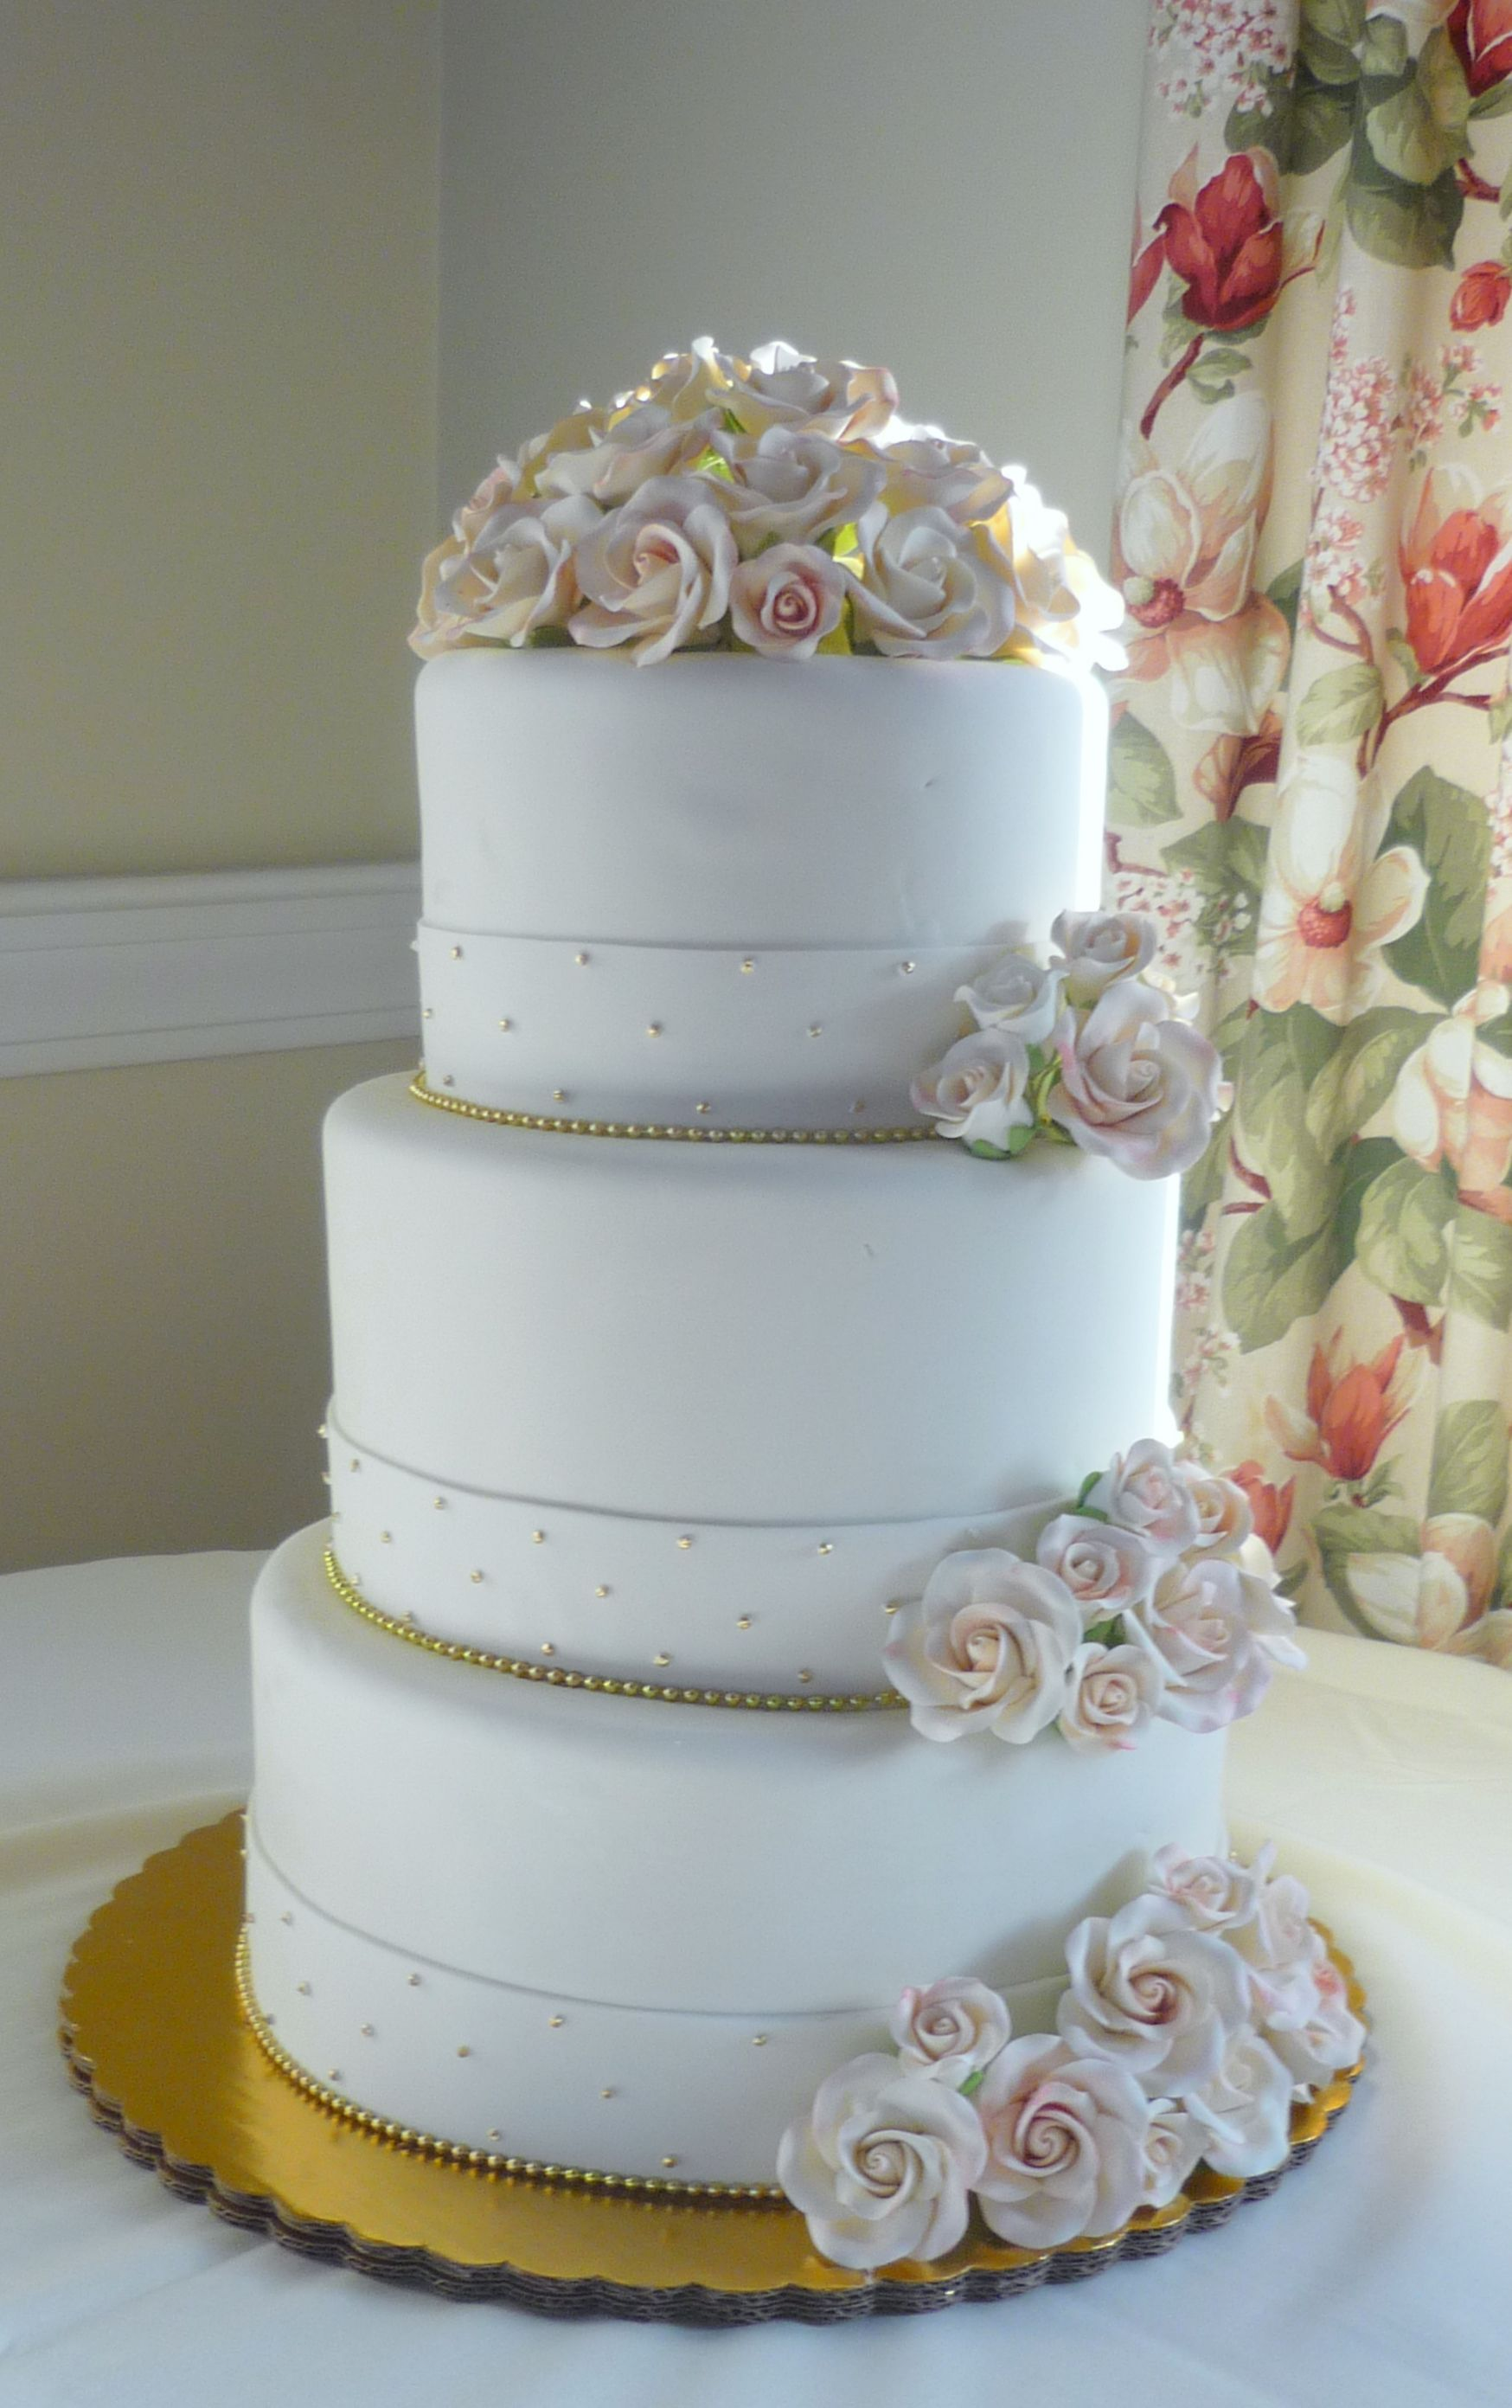 Victorian Inspired Wedding Cake In Blush Tone Pink And Gold Www